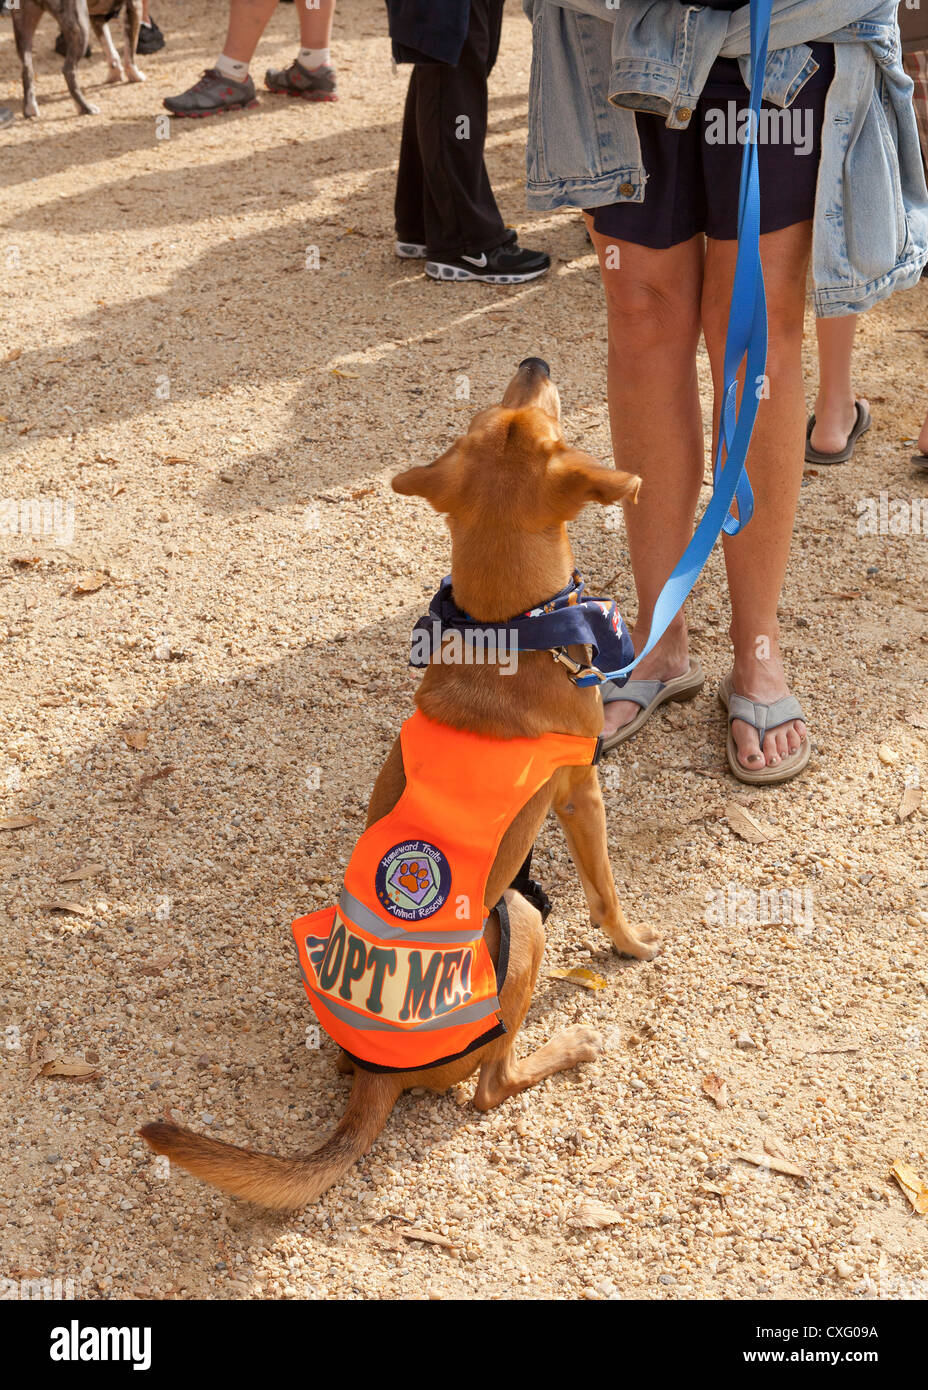 Rescue dog wearing 'Adopt Me' vest - Stock Image